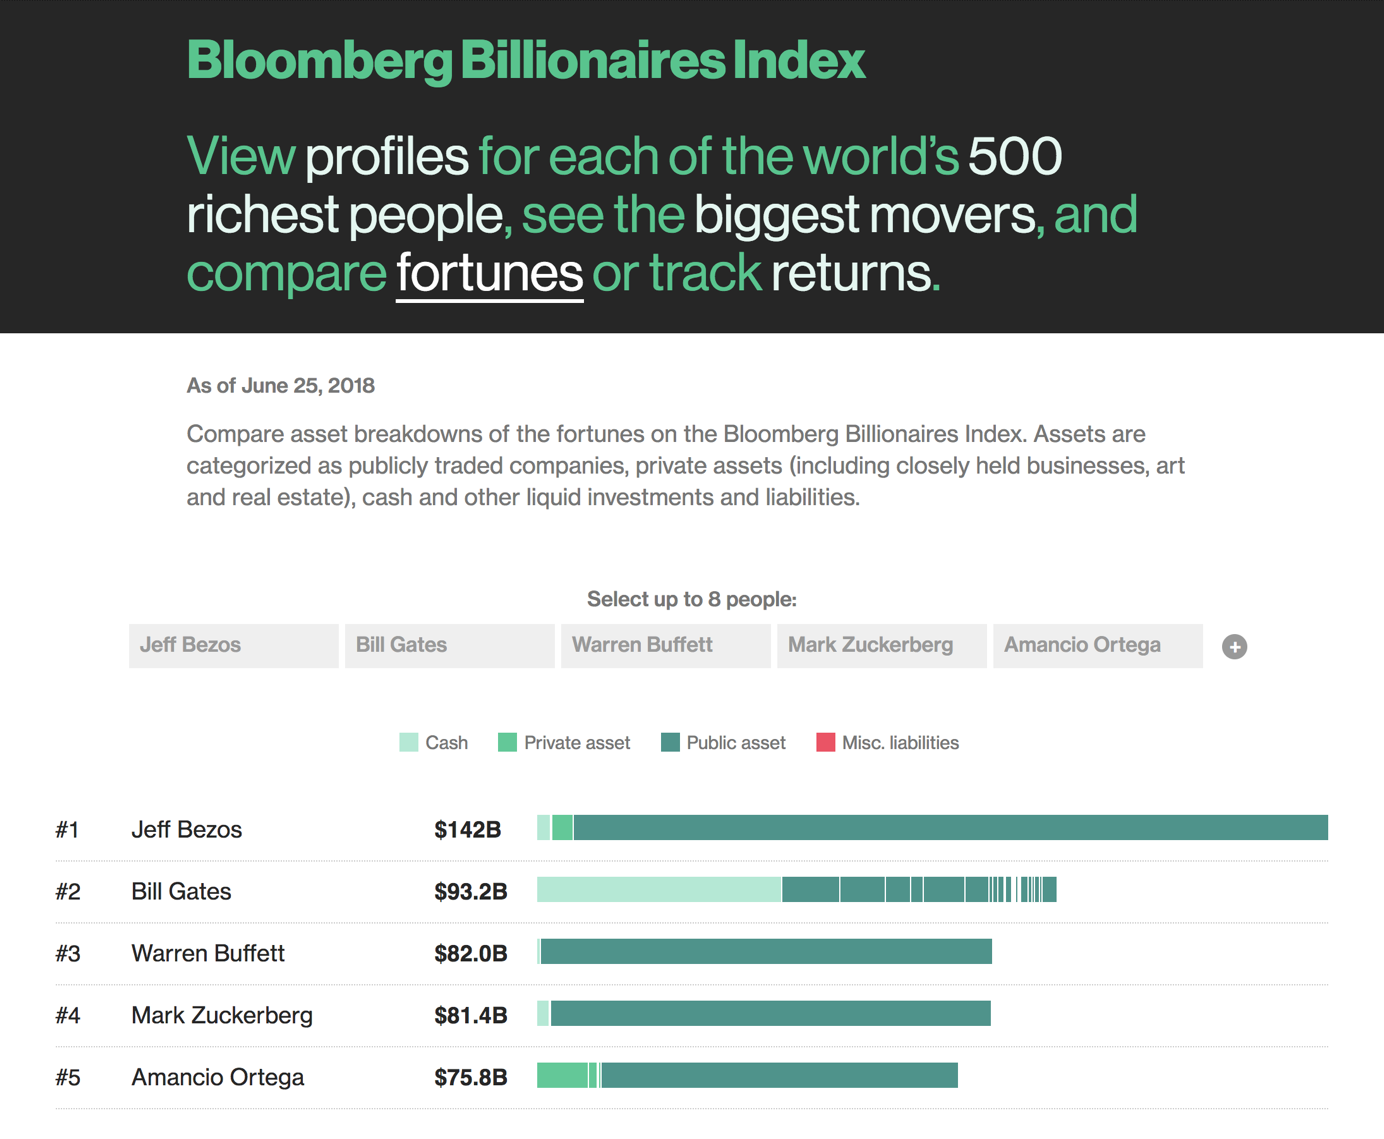 The Bloomberg Billionaires Index is an interactive infographic